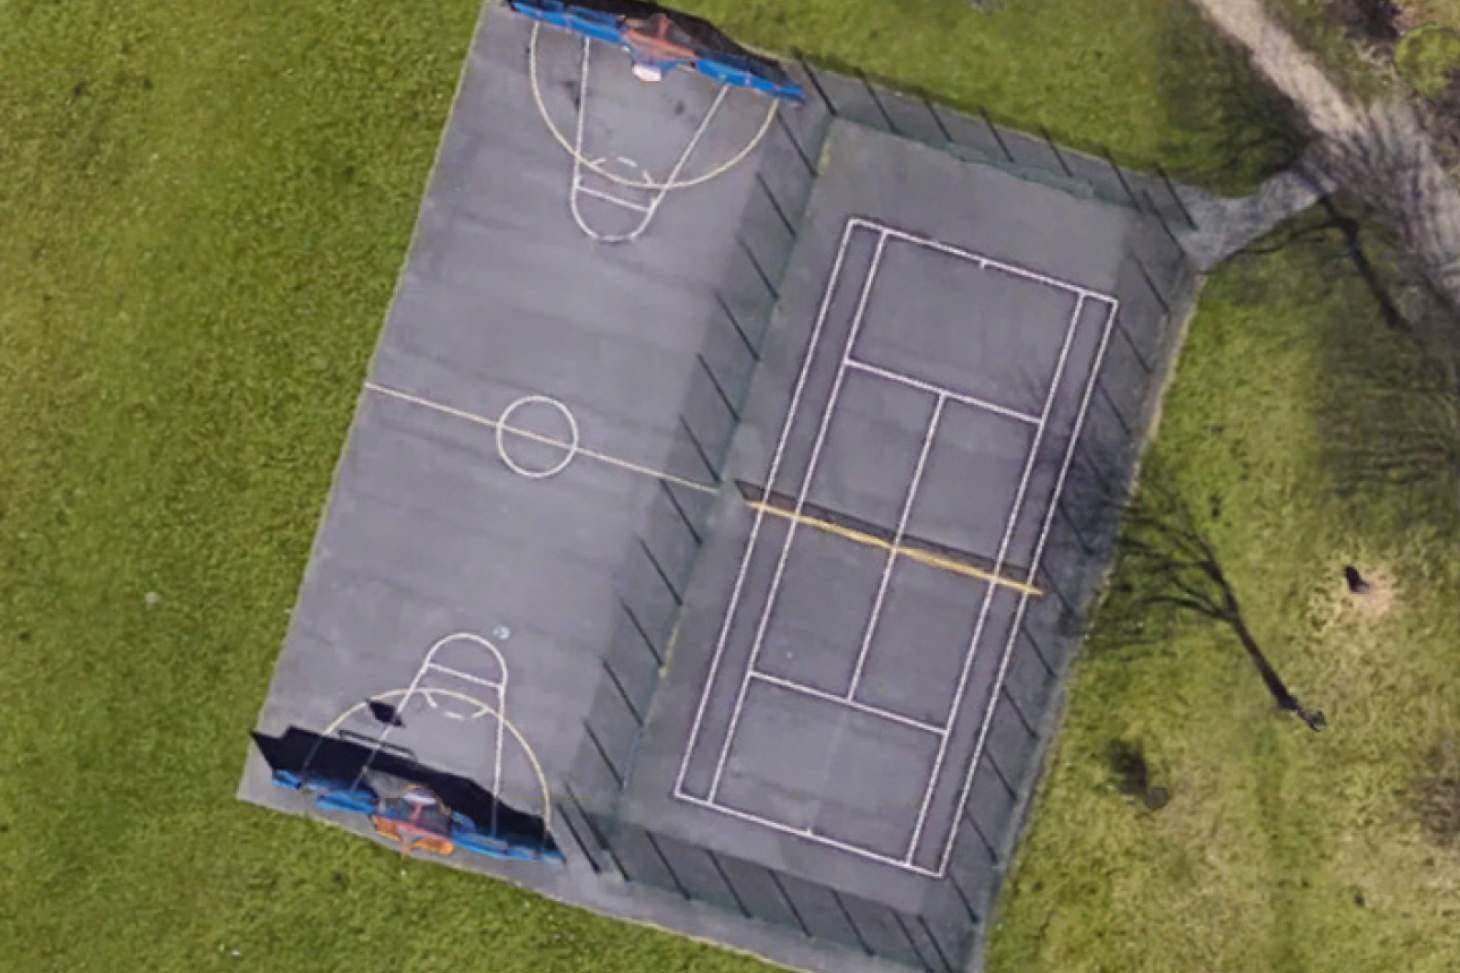 Nuthurst Park Outdoor | Concrete tennis court